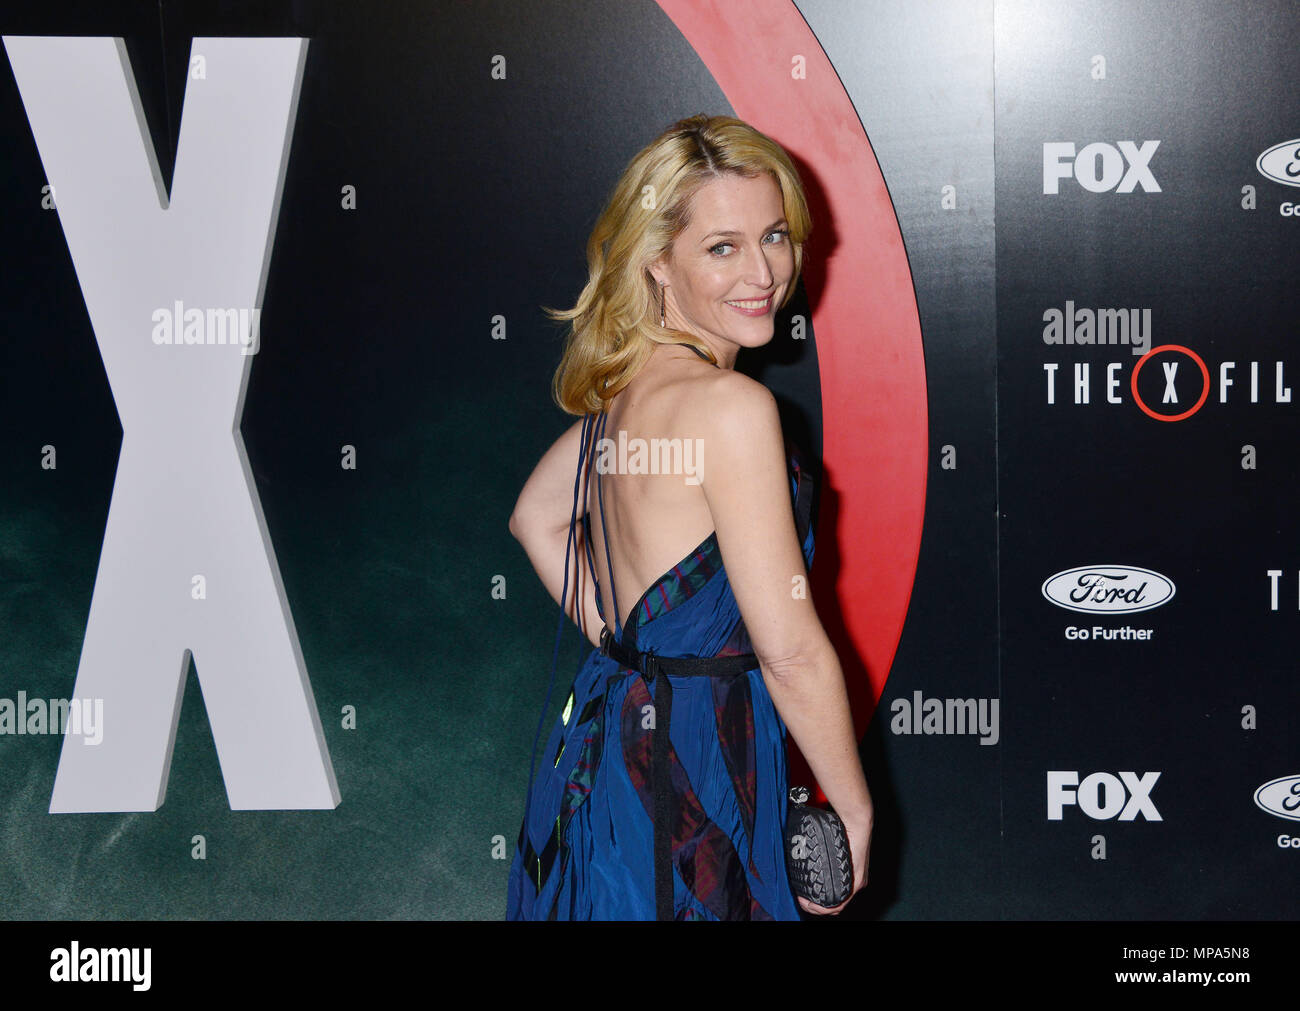 a_Gillian Anderson 006  at The X-Files Premiere at California Science Center in Los Angeles, CA  January 12, 2016.a_Gillian Anderson 006 ------------- Red Carpet Event, Vertical, USA, Film Industry, Celebrities,  Photography, Bestof, Arts Culture and Entertainment, Topix Celebrities fashion /  Vertical, Best of, Event in Hollywood Life - California,  Red Carpet and backstage, USA, Film Industry, Celebrities,  movie celebrities, TV celebrities, Music celebrities, Photography, Bestof, Arts Culture and Entertainment,  Topix, Three Quarters, vertical, one person,, from the year , 2016, inquiry tsu - Stock Image